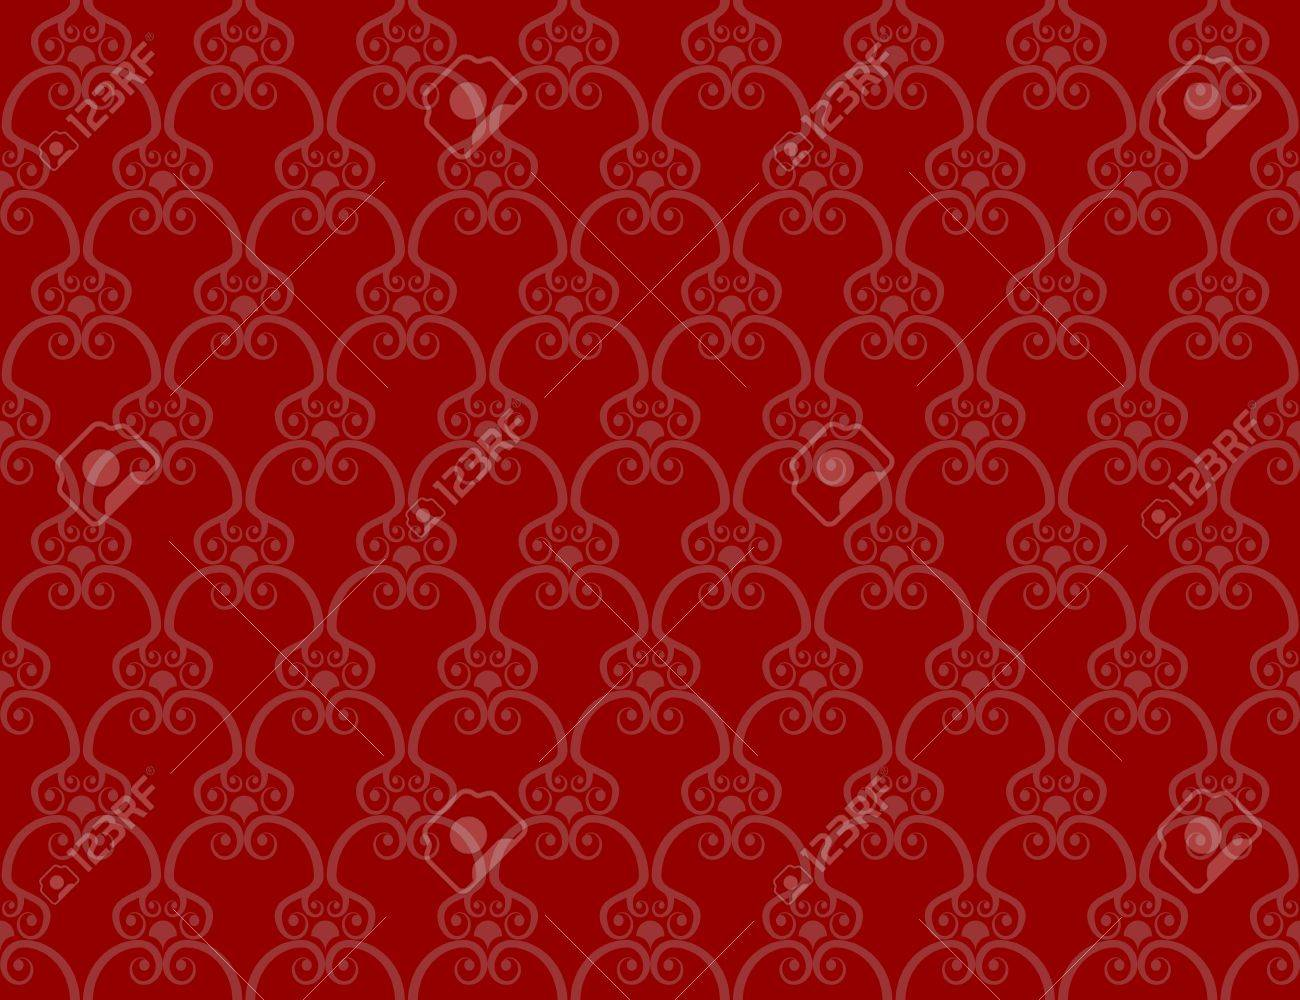 Retro Wallpaper Red Seamless Background